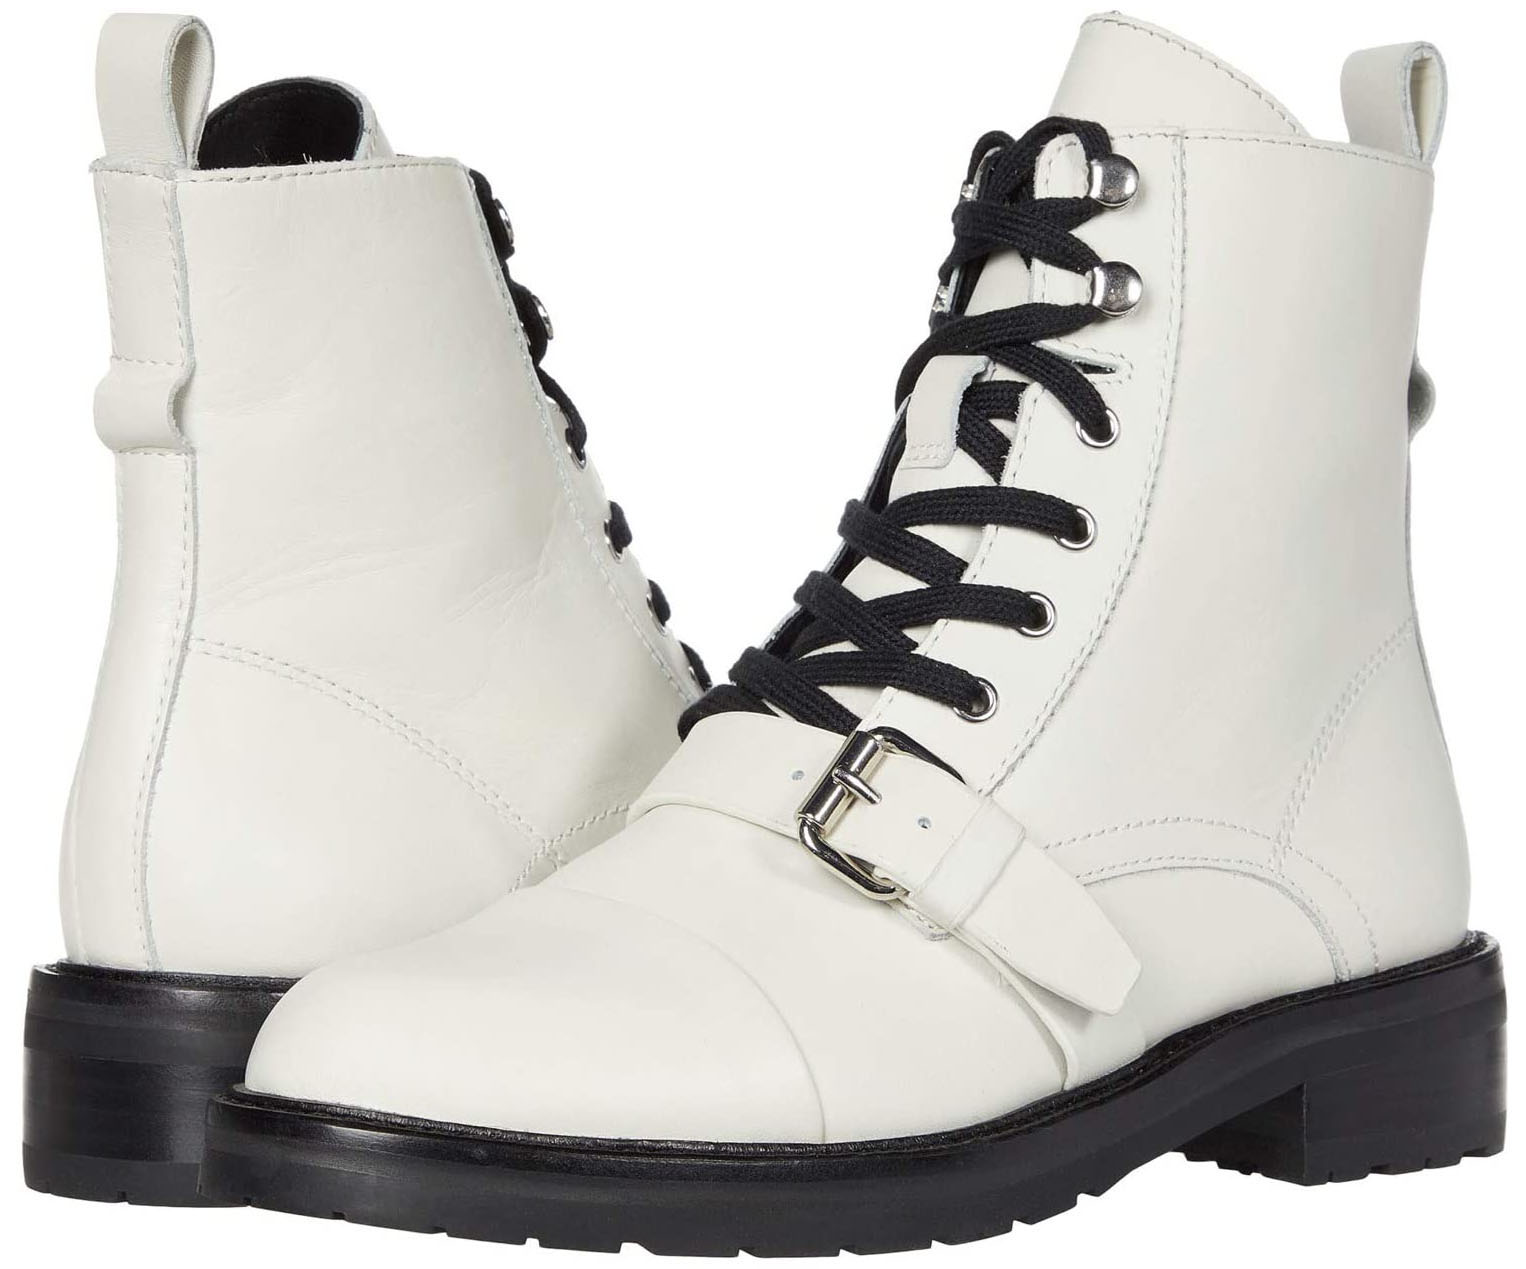 The Donita boots are available in different colorways, including the chic black-and-white version